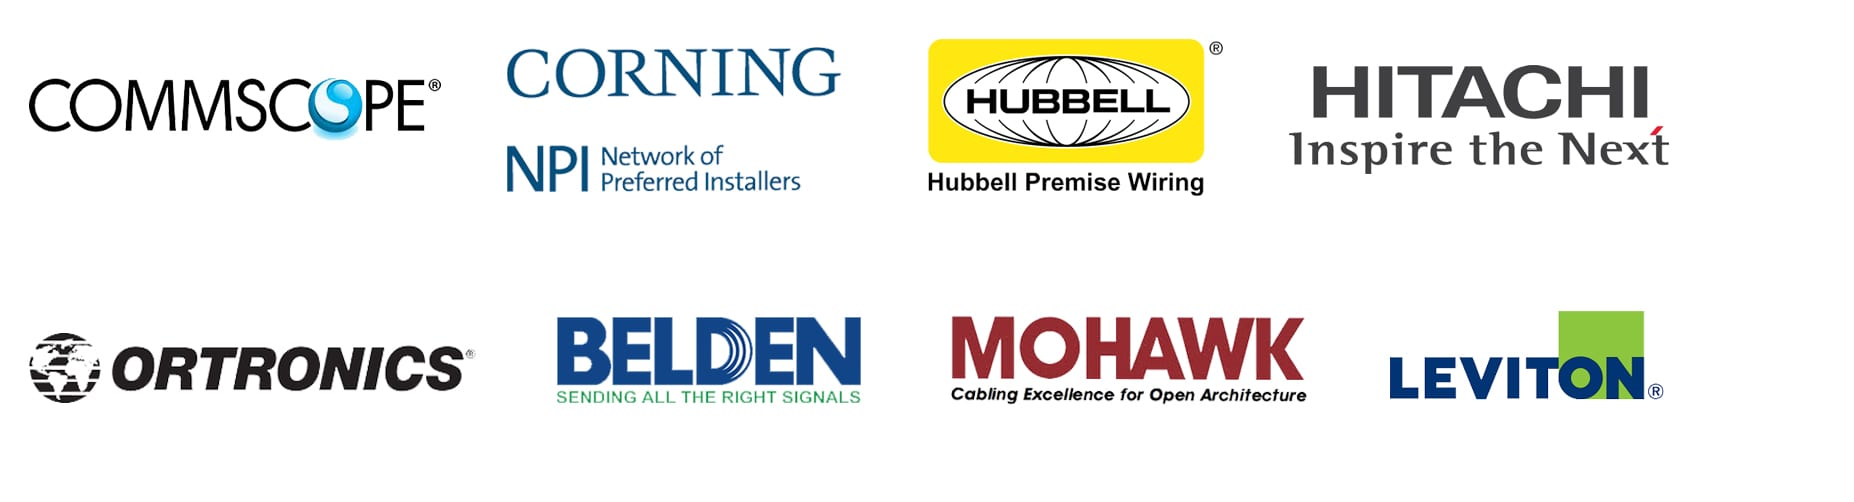 Certifications for Structured Cabling, Components, Copper & Fiber Optic with the following: Commscope, Corning, Hubbell, Hitachi, Ortronics, Belden, Leviton, Mohawk